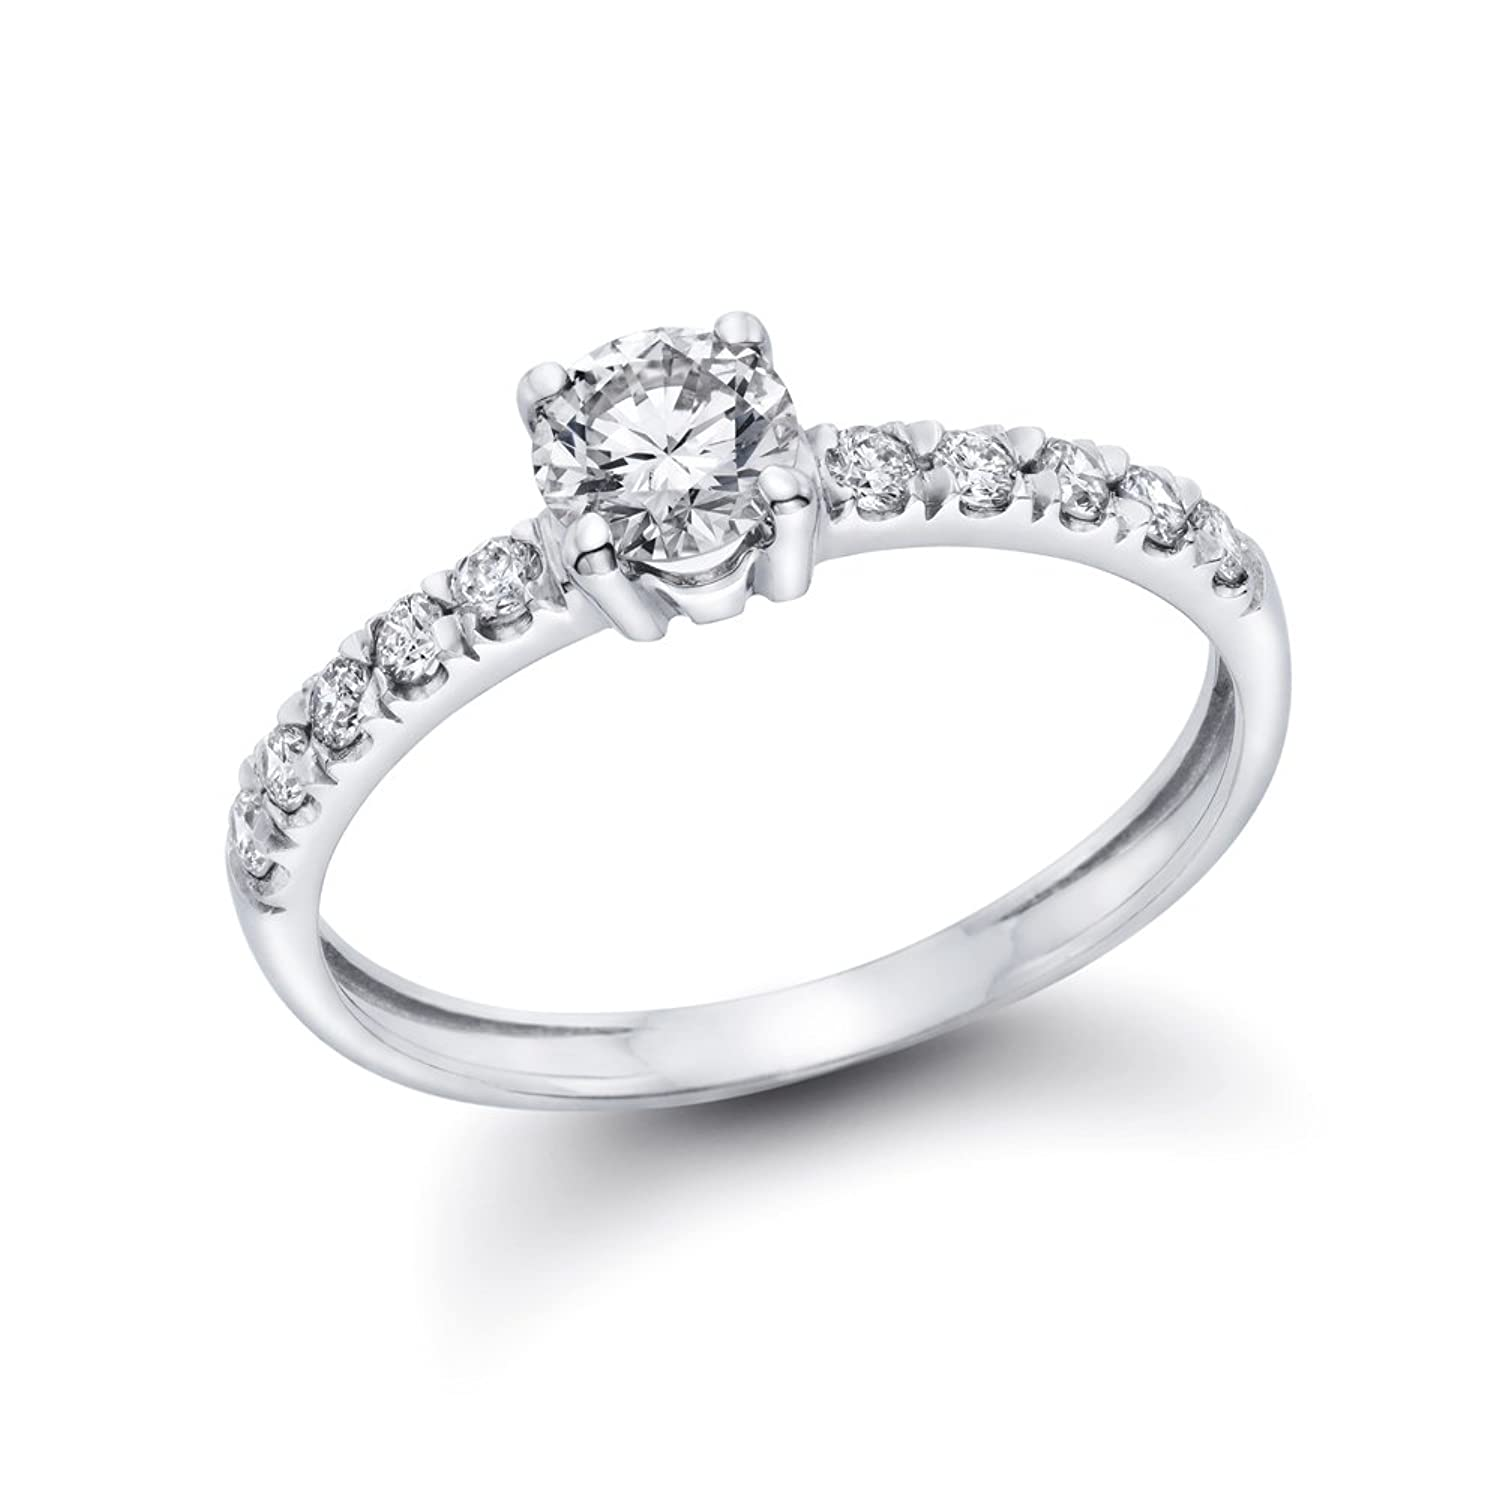 rings radiant certified diamond solitaire eng model product ring gia cut with engagement